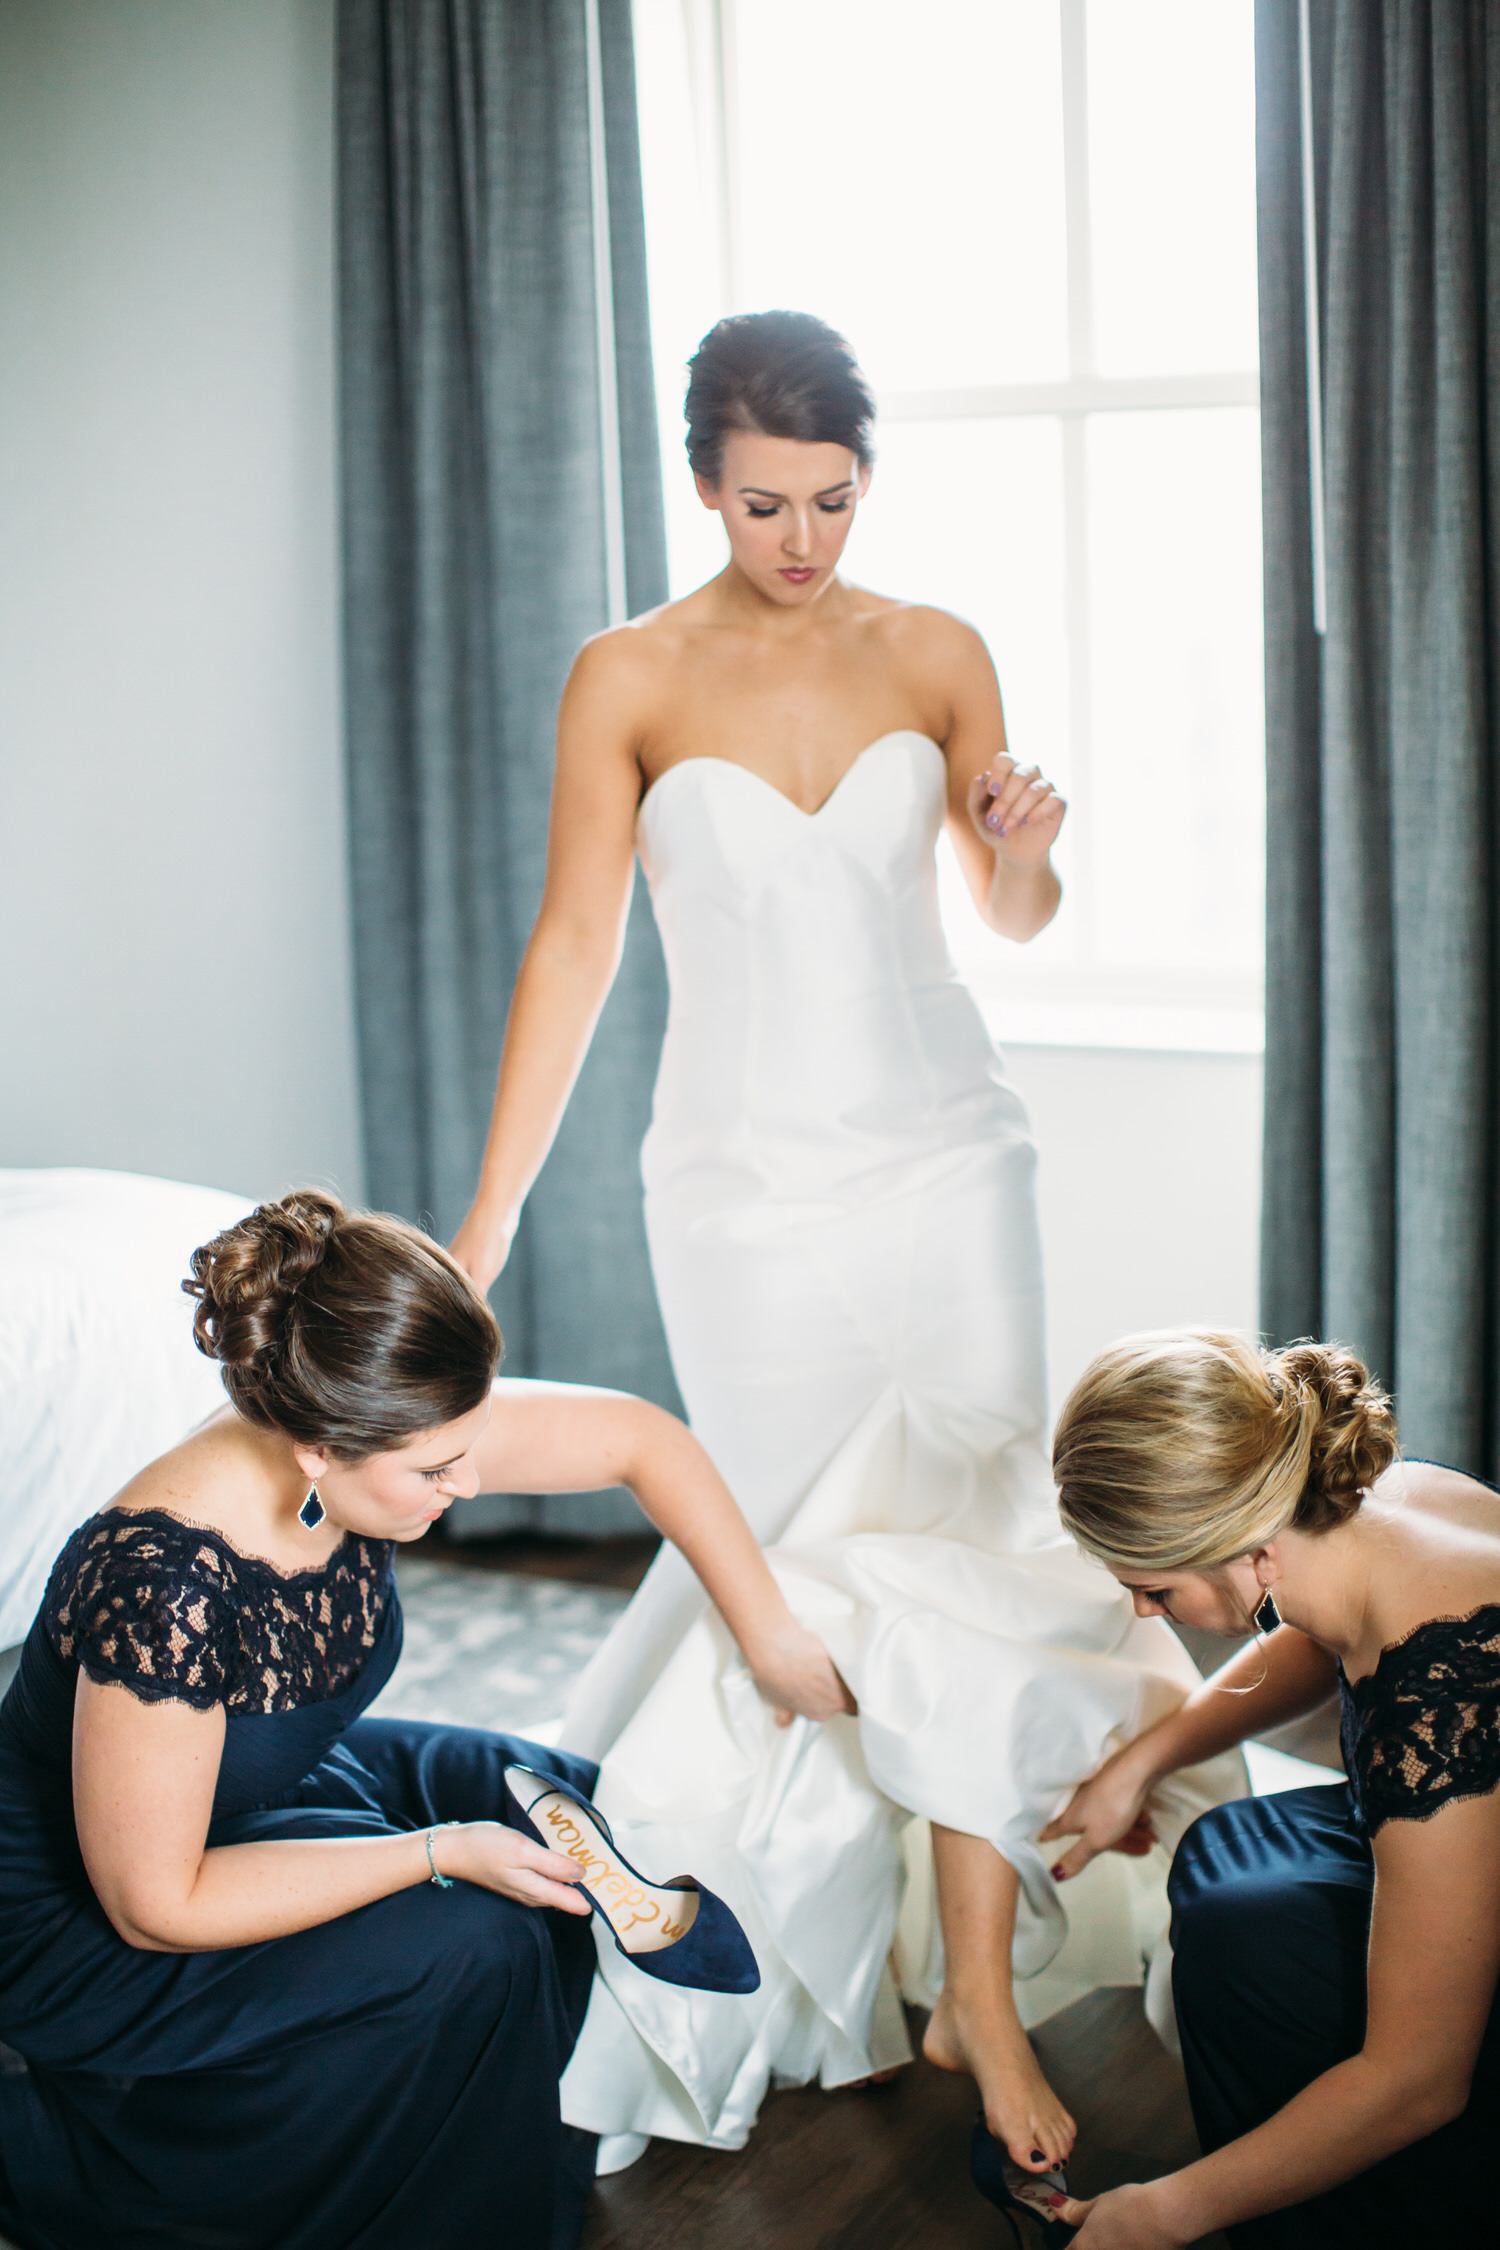 Bride getting ready with bridesmaids, st louis wedding photographer, classic black tie wedding